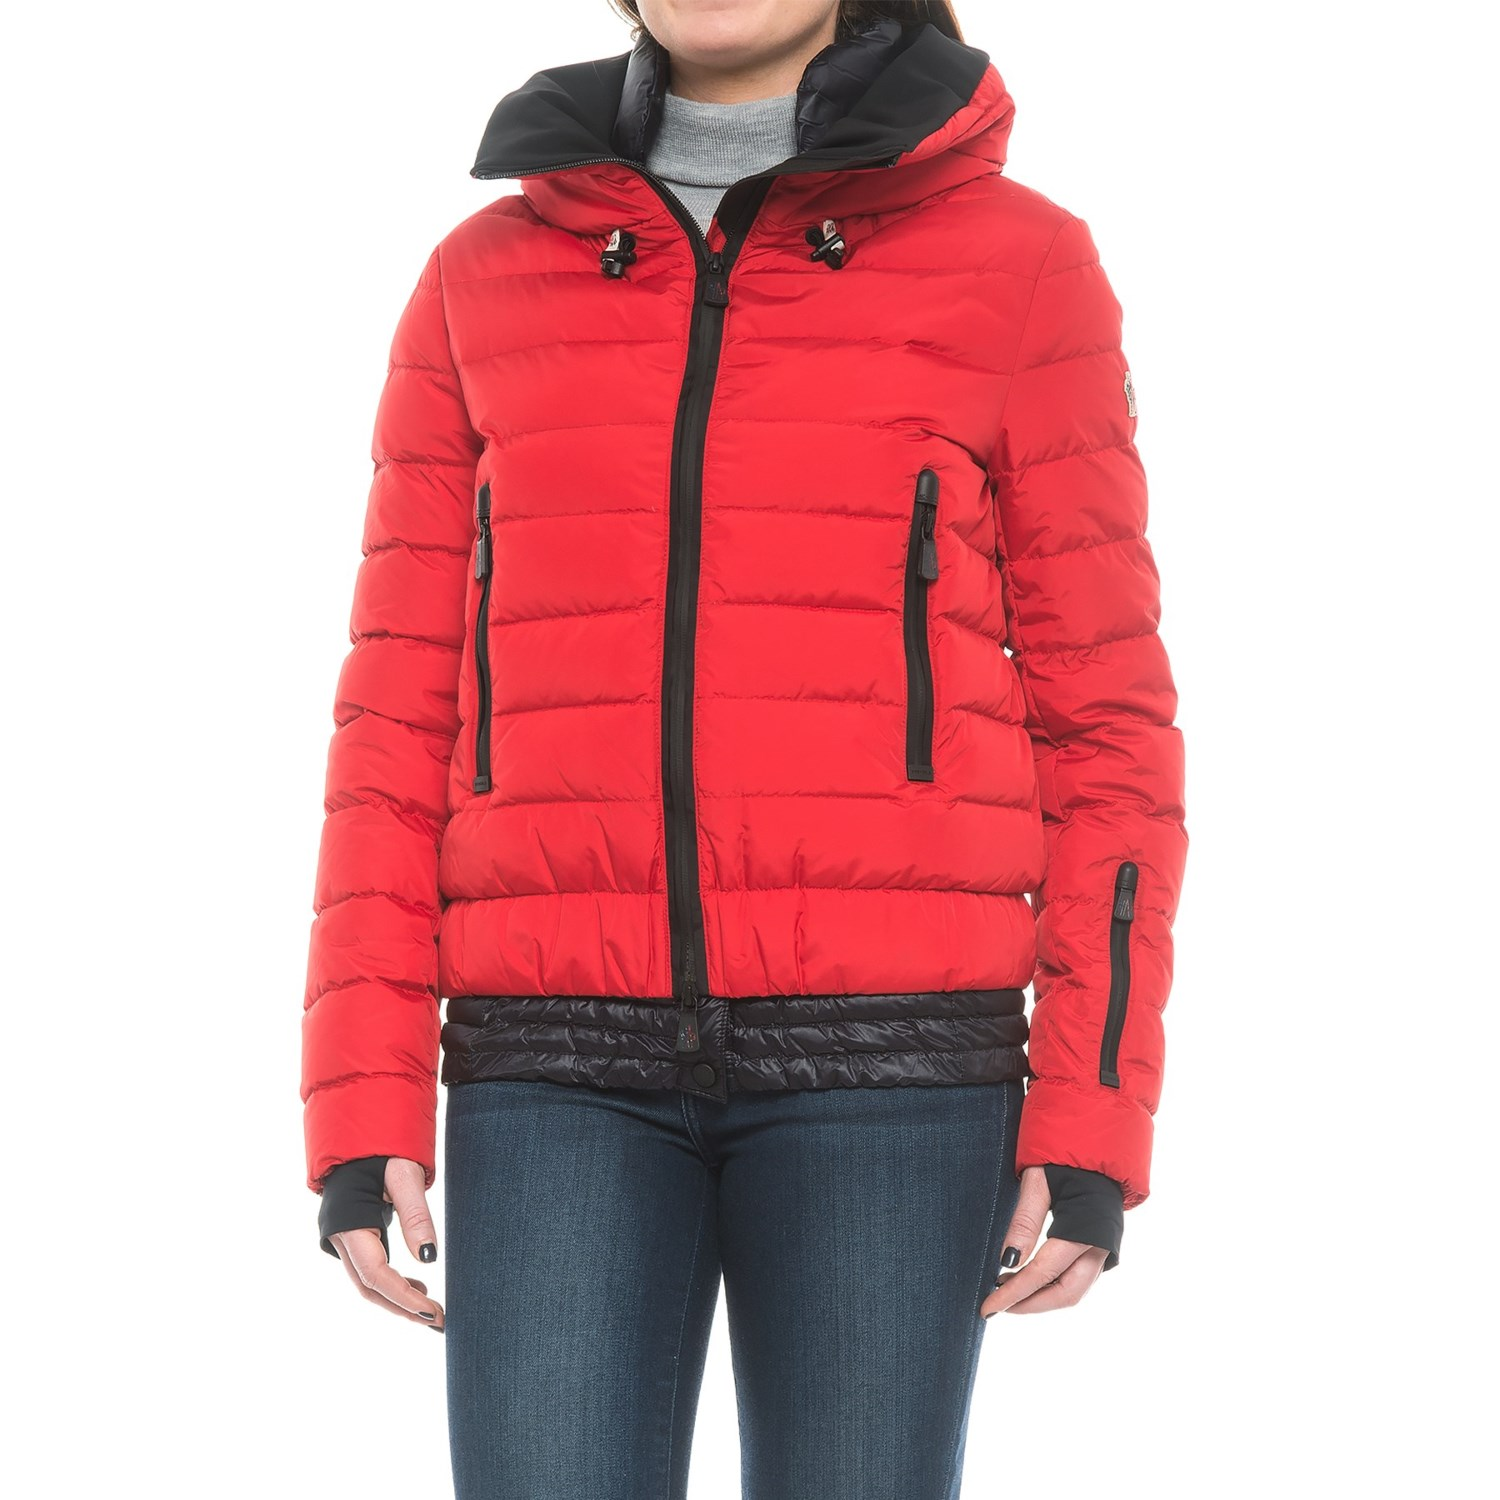 moncler red puffer jacket women's